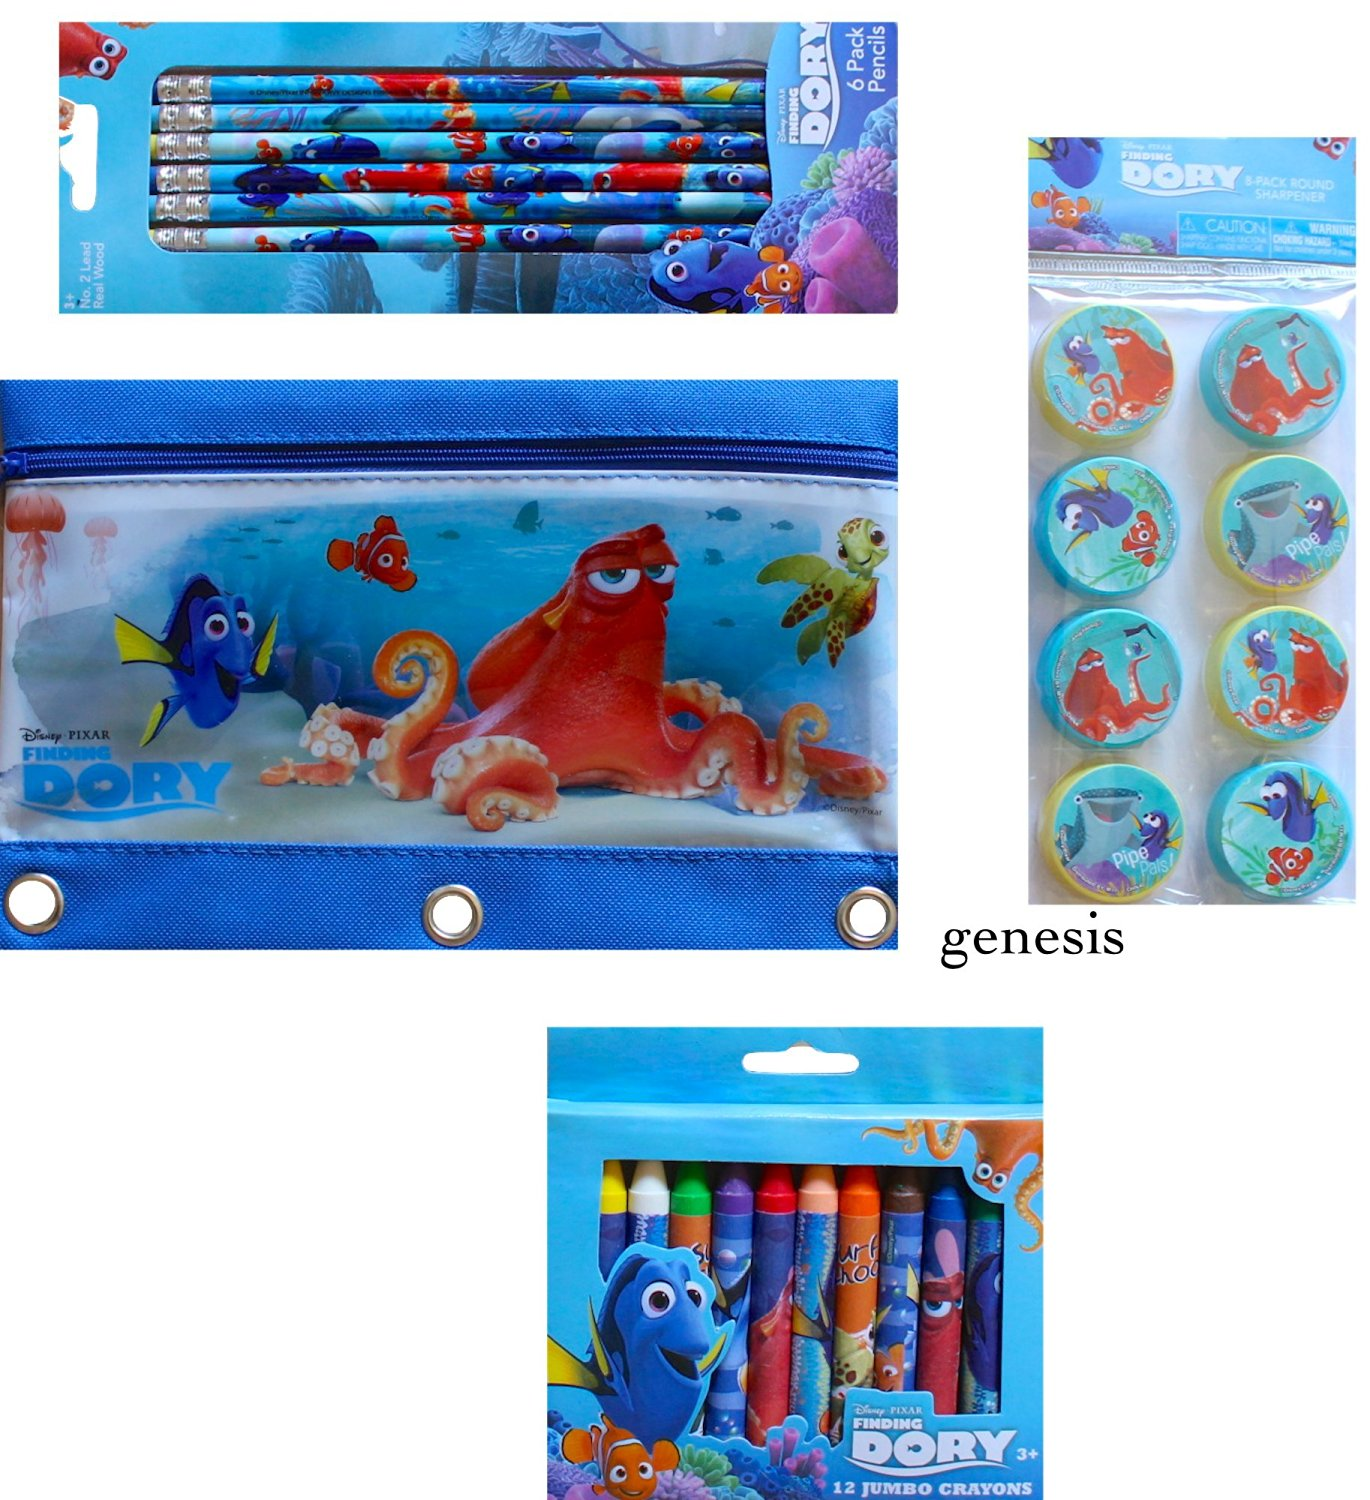 Disney Finding Dory 4 Pc Children's Creative School Supplies Value Pack Dory Pencils, Sharpeners, Pencil Bag & Dory Jumbo Crayons